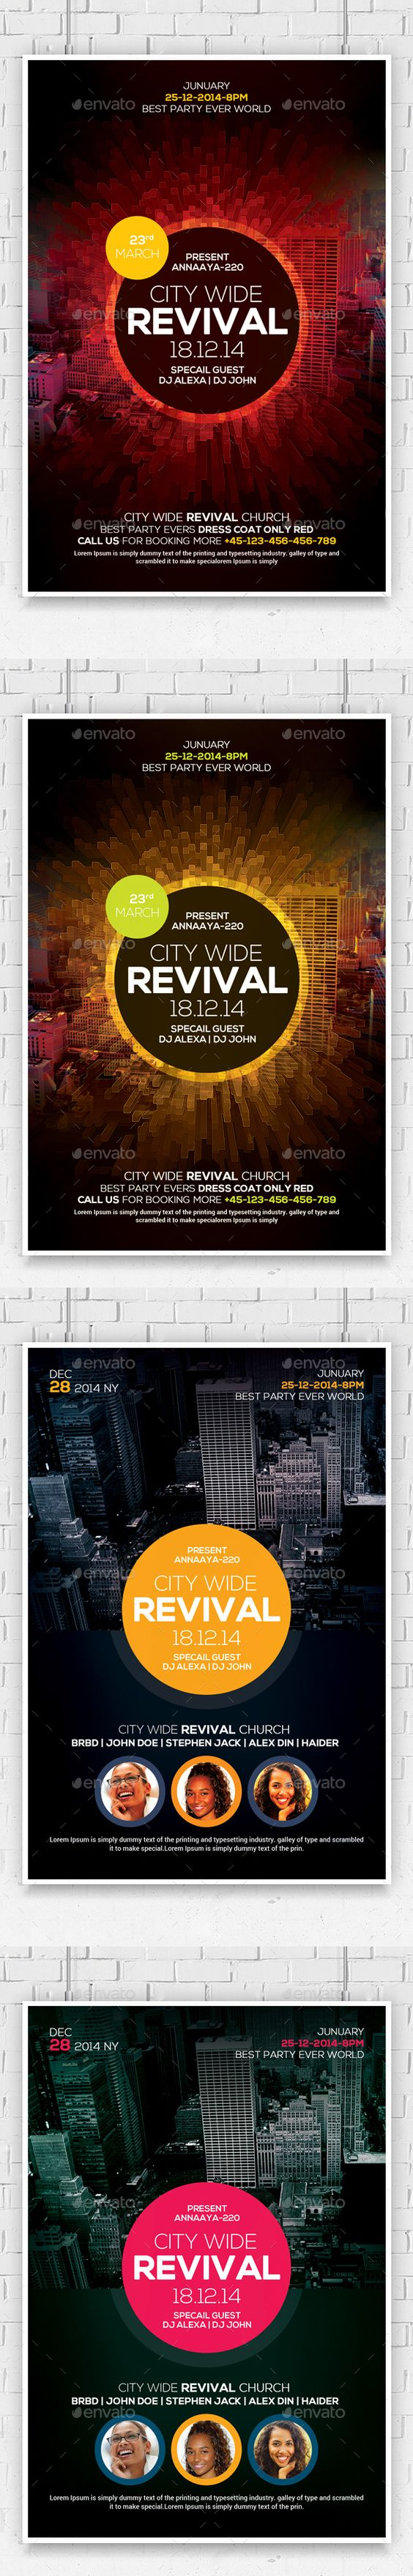 flyer template church and bible studies revival church flyers template bundle psd design graphicriver